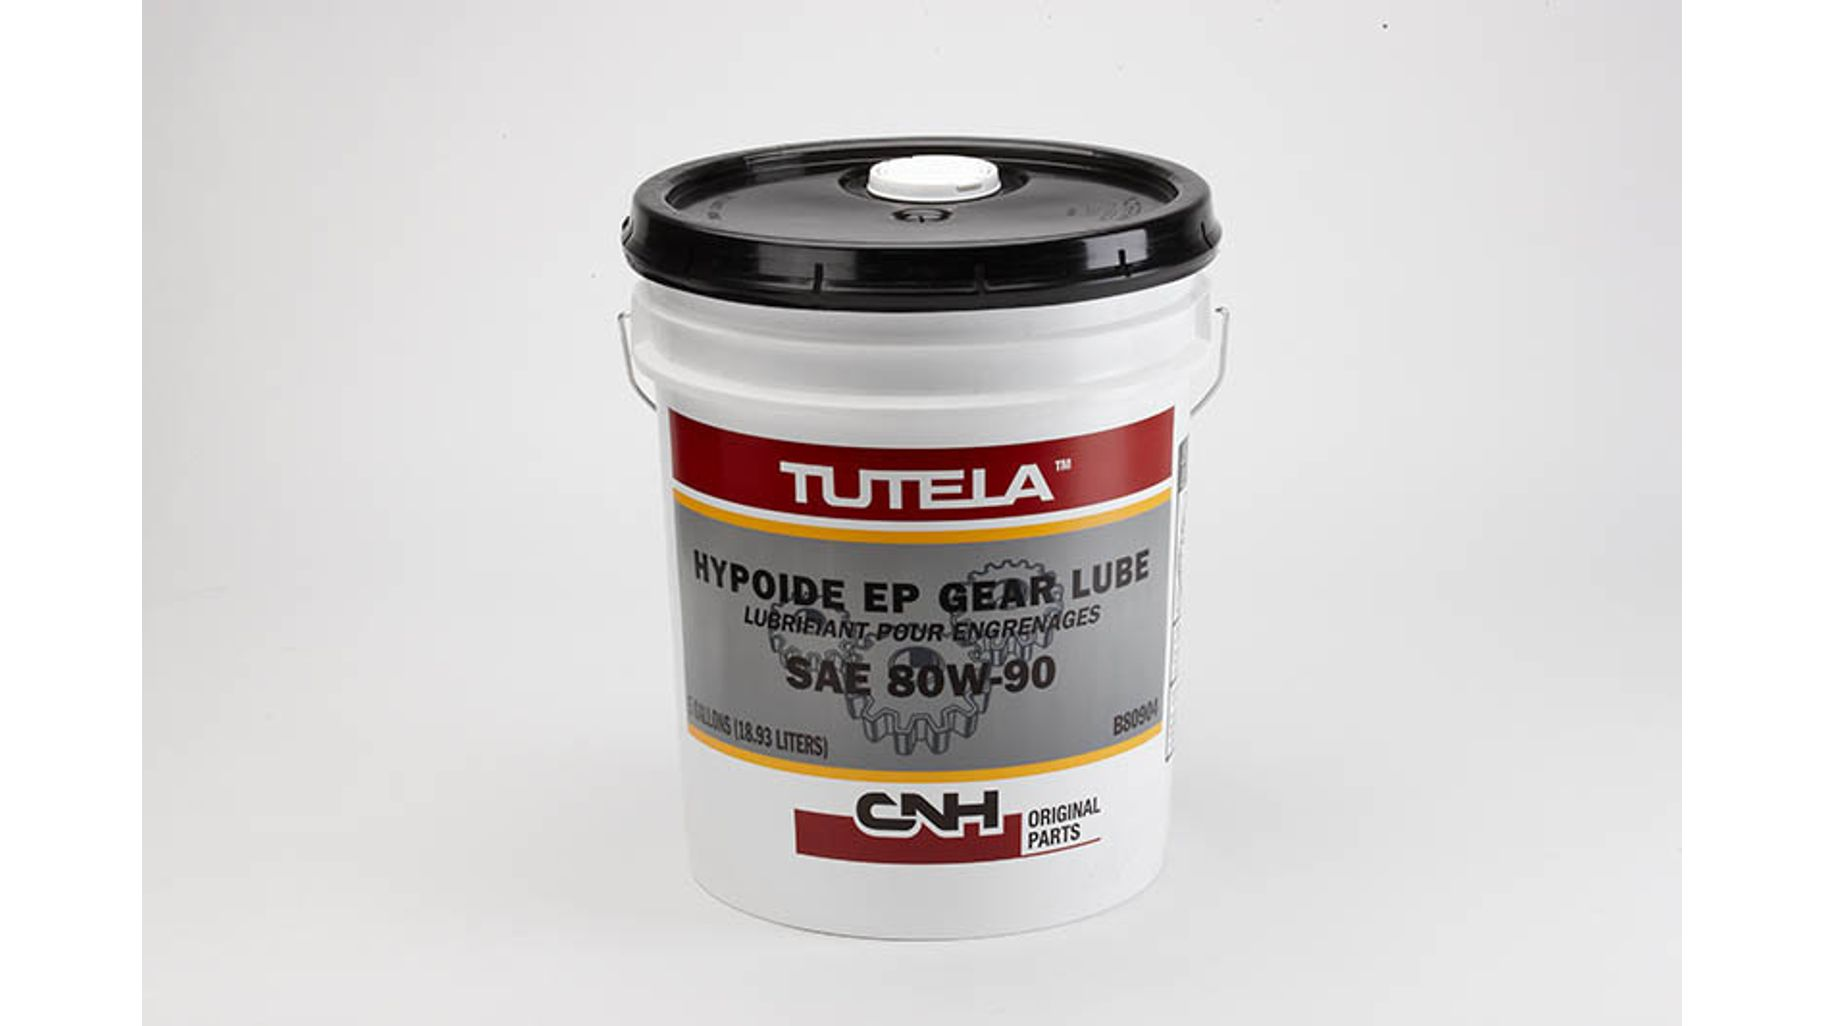 LUBRICANT,SAE 80W 90, MAT 3511 | NEWHOLLANDCE | US | EN